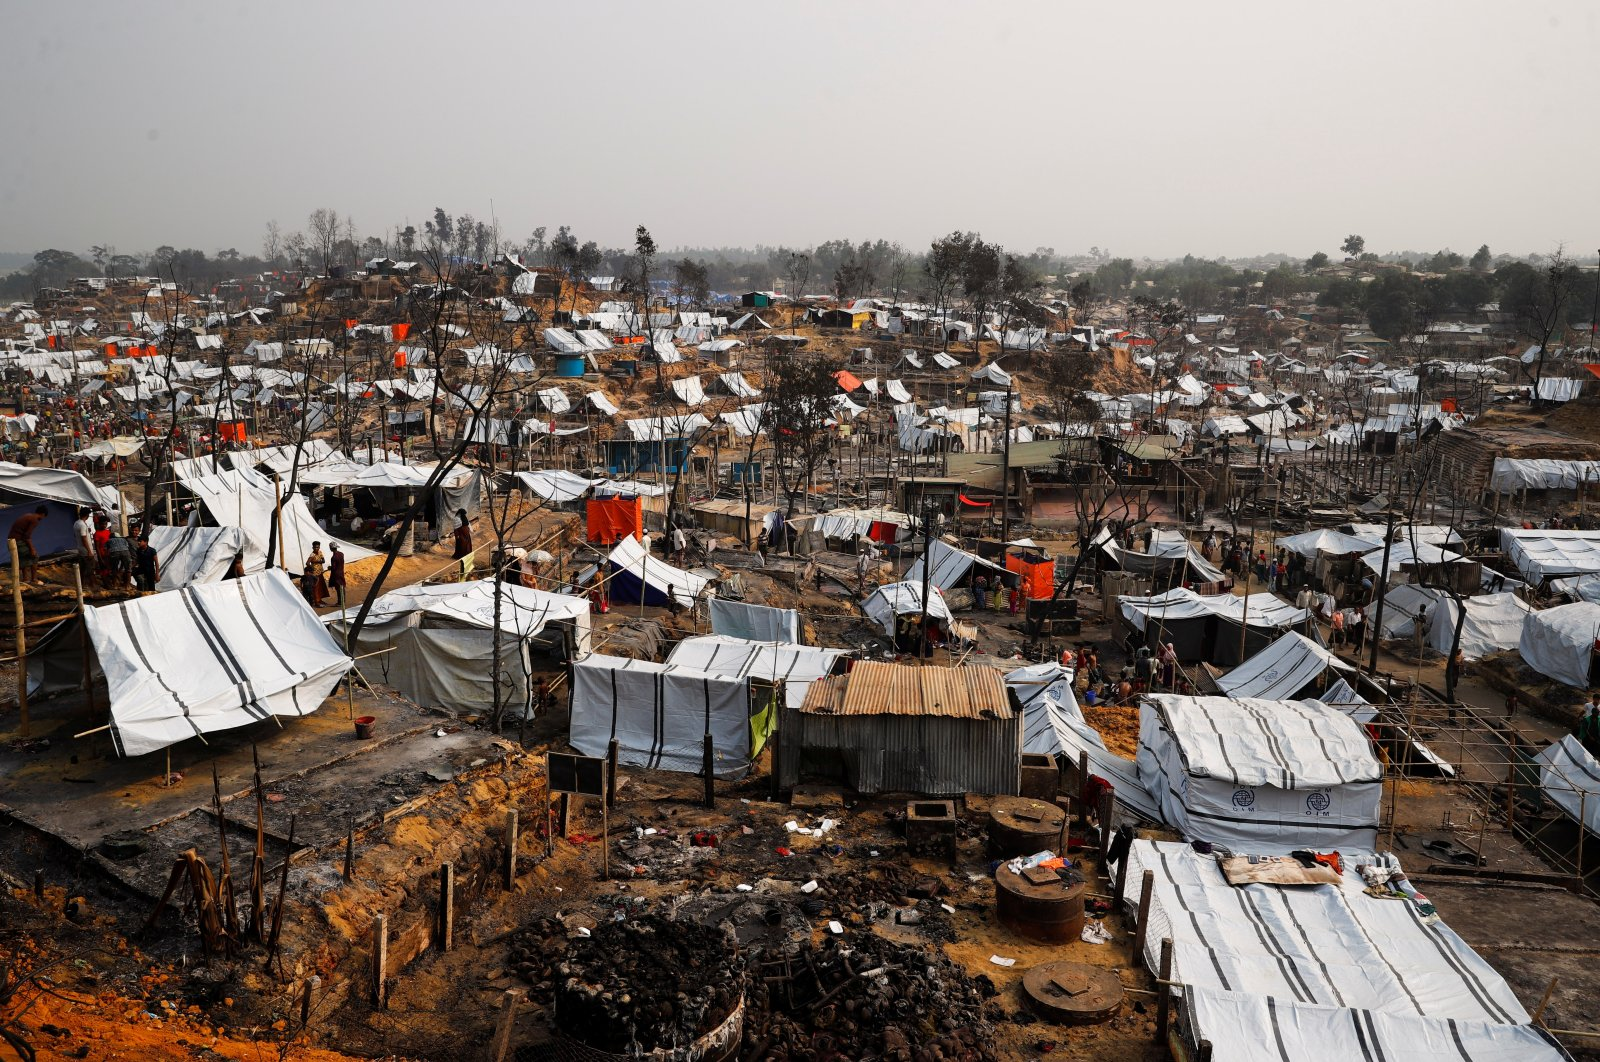 A general view of the Rohingya refugee camp after a massive fire broke out two days ago and destroyed thousands of shelters in Cox's Bazar, Bangladesh, March 24, 2021. (Reuters Photo)